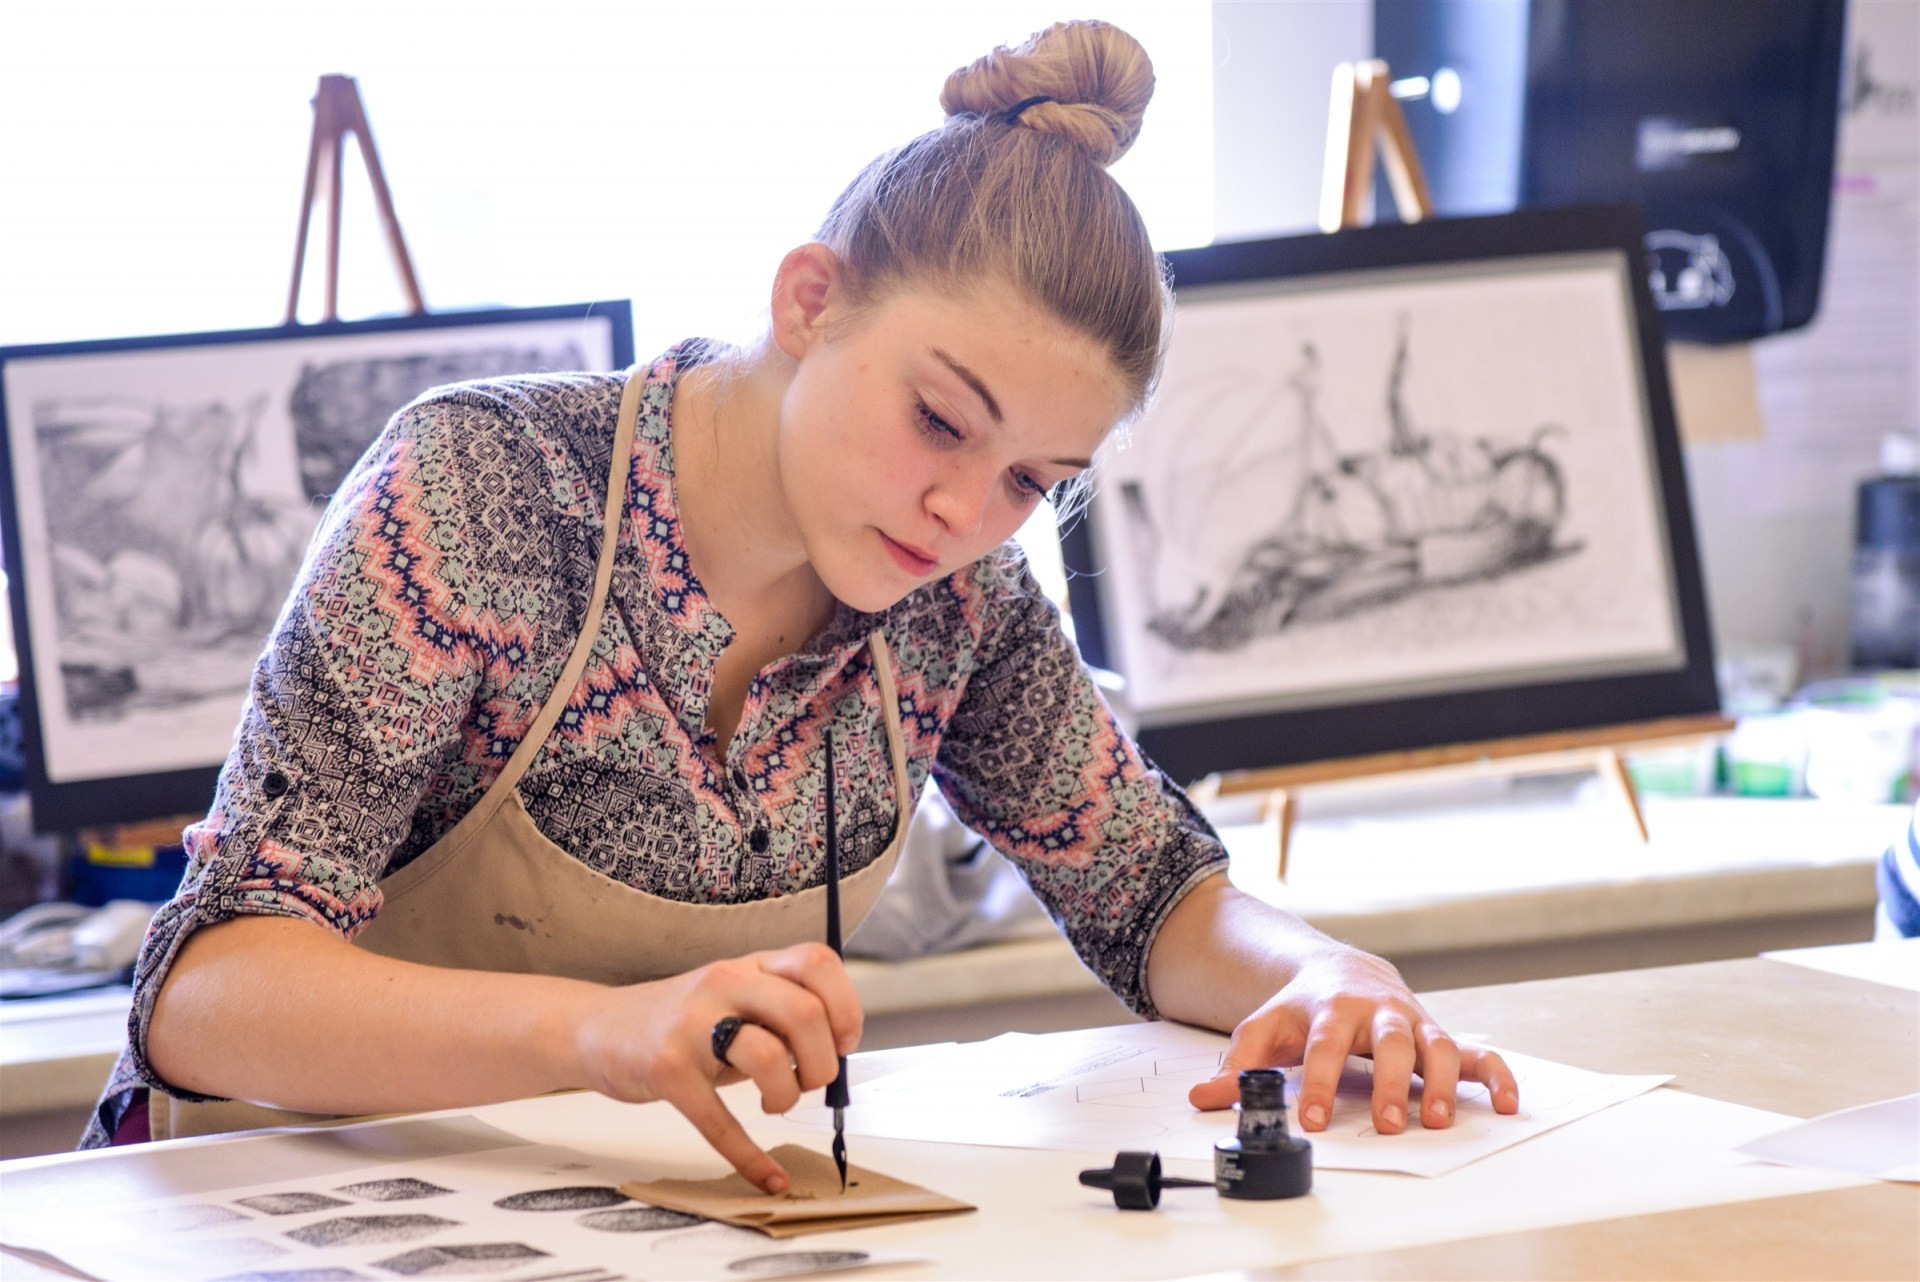 A female student working on a pen and ink drawing in the art studio.